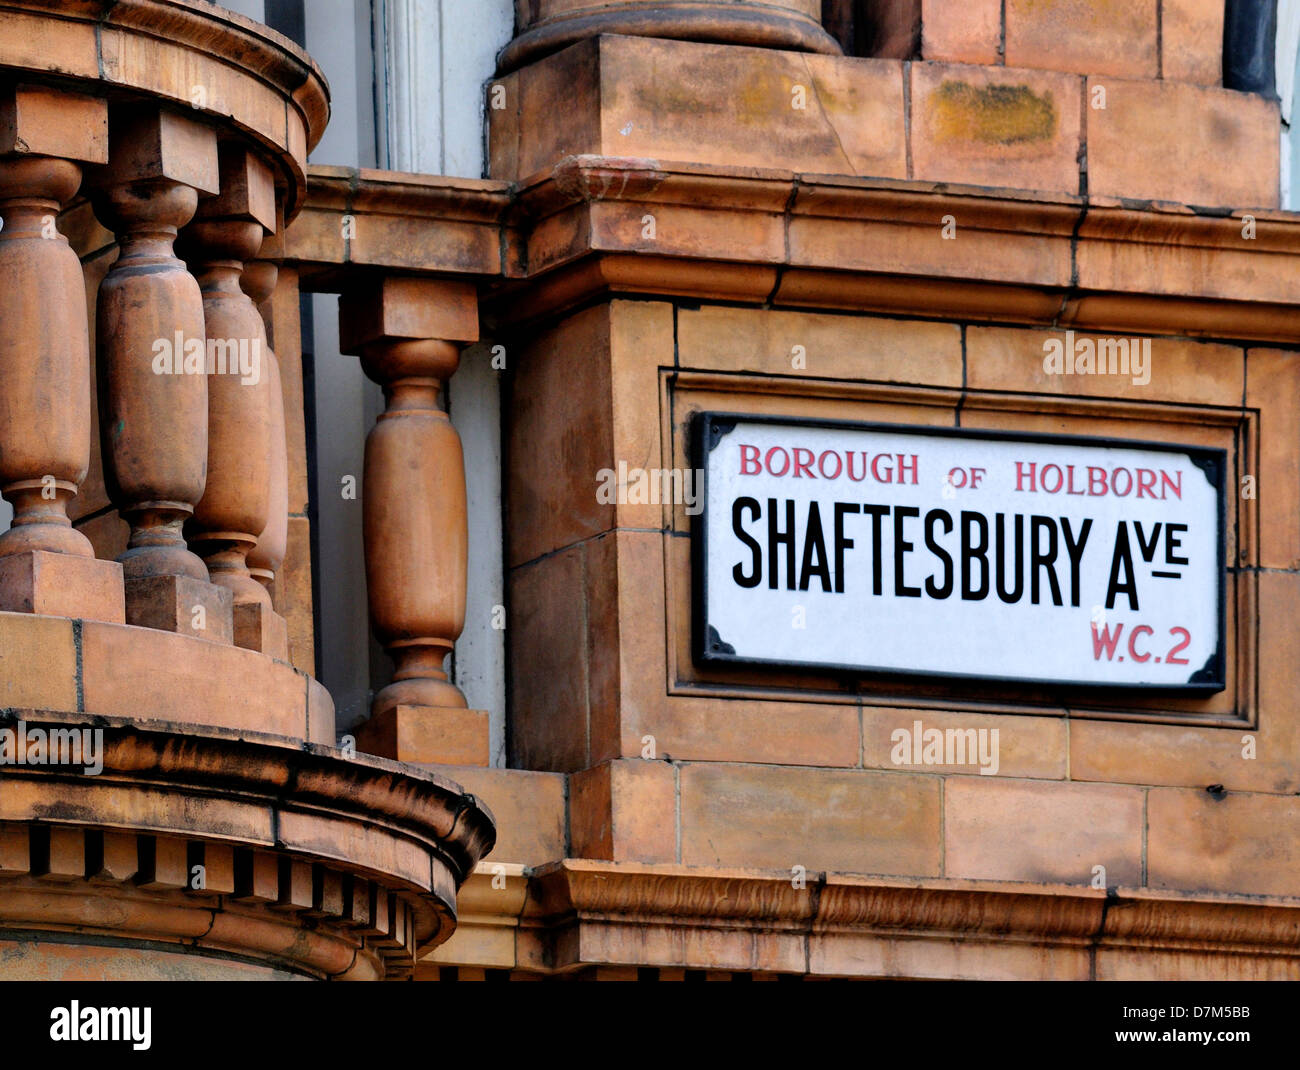 London, England, UK. Shaftesbury Avenue street sign - Stock Image